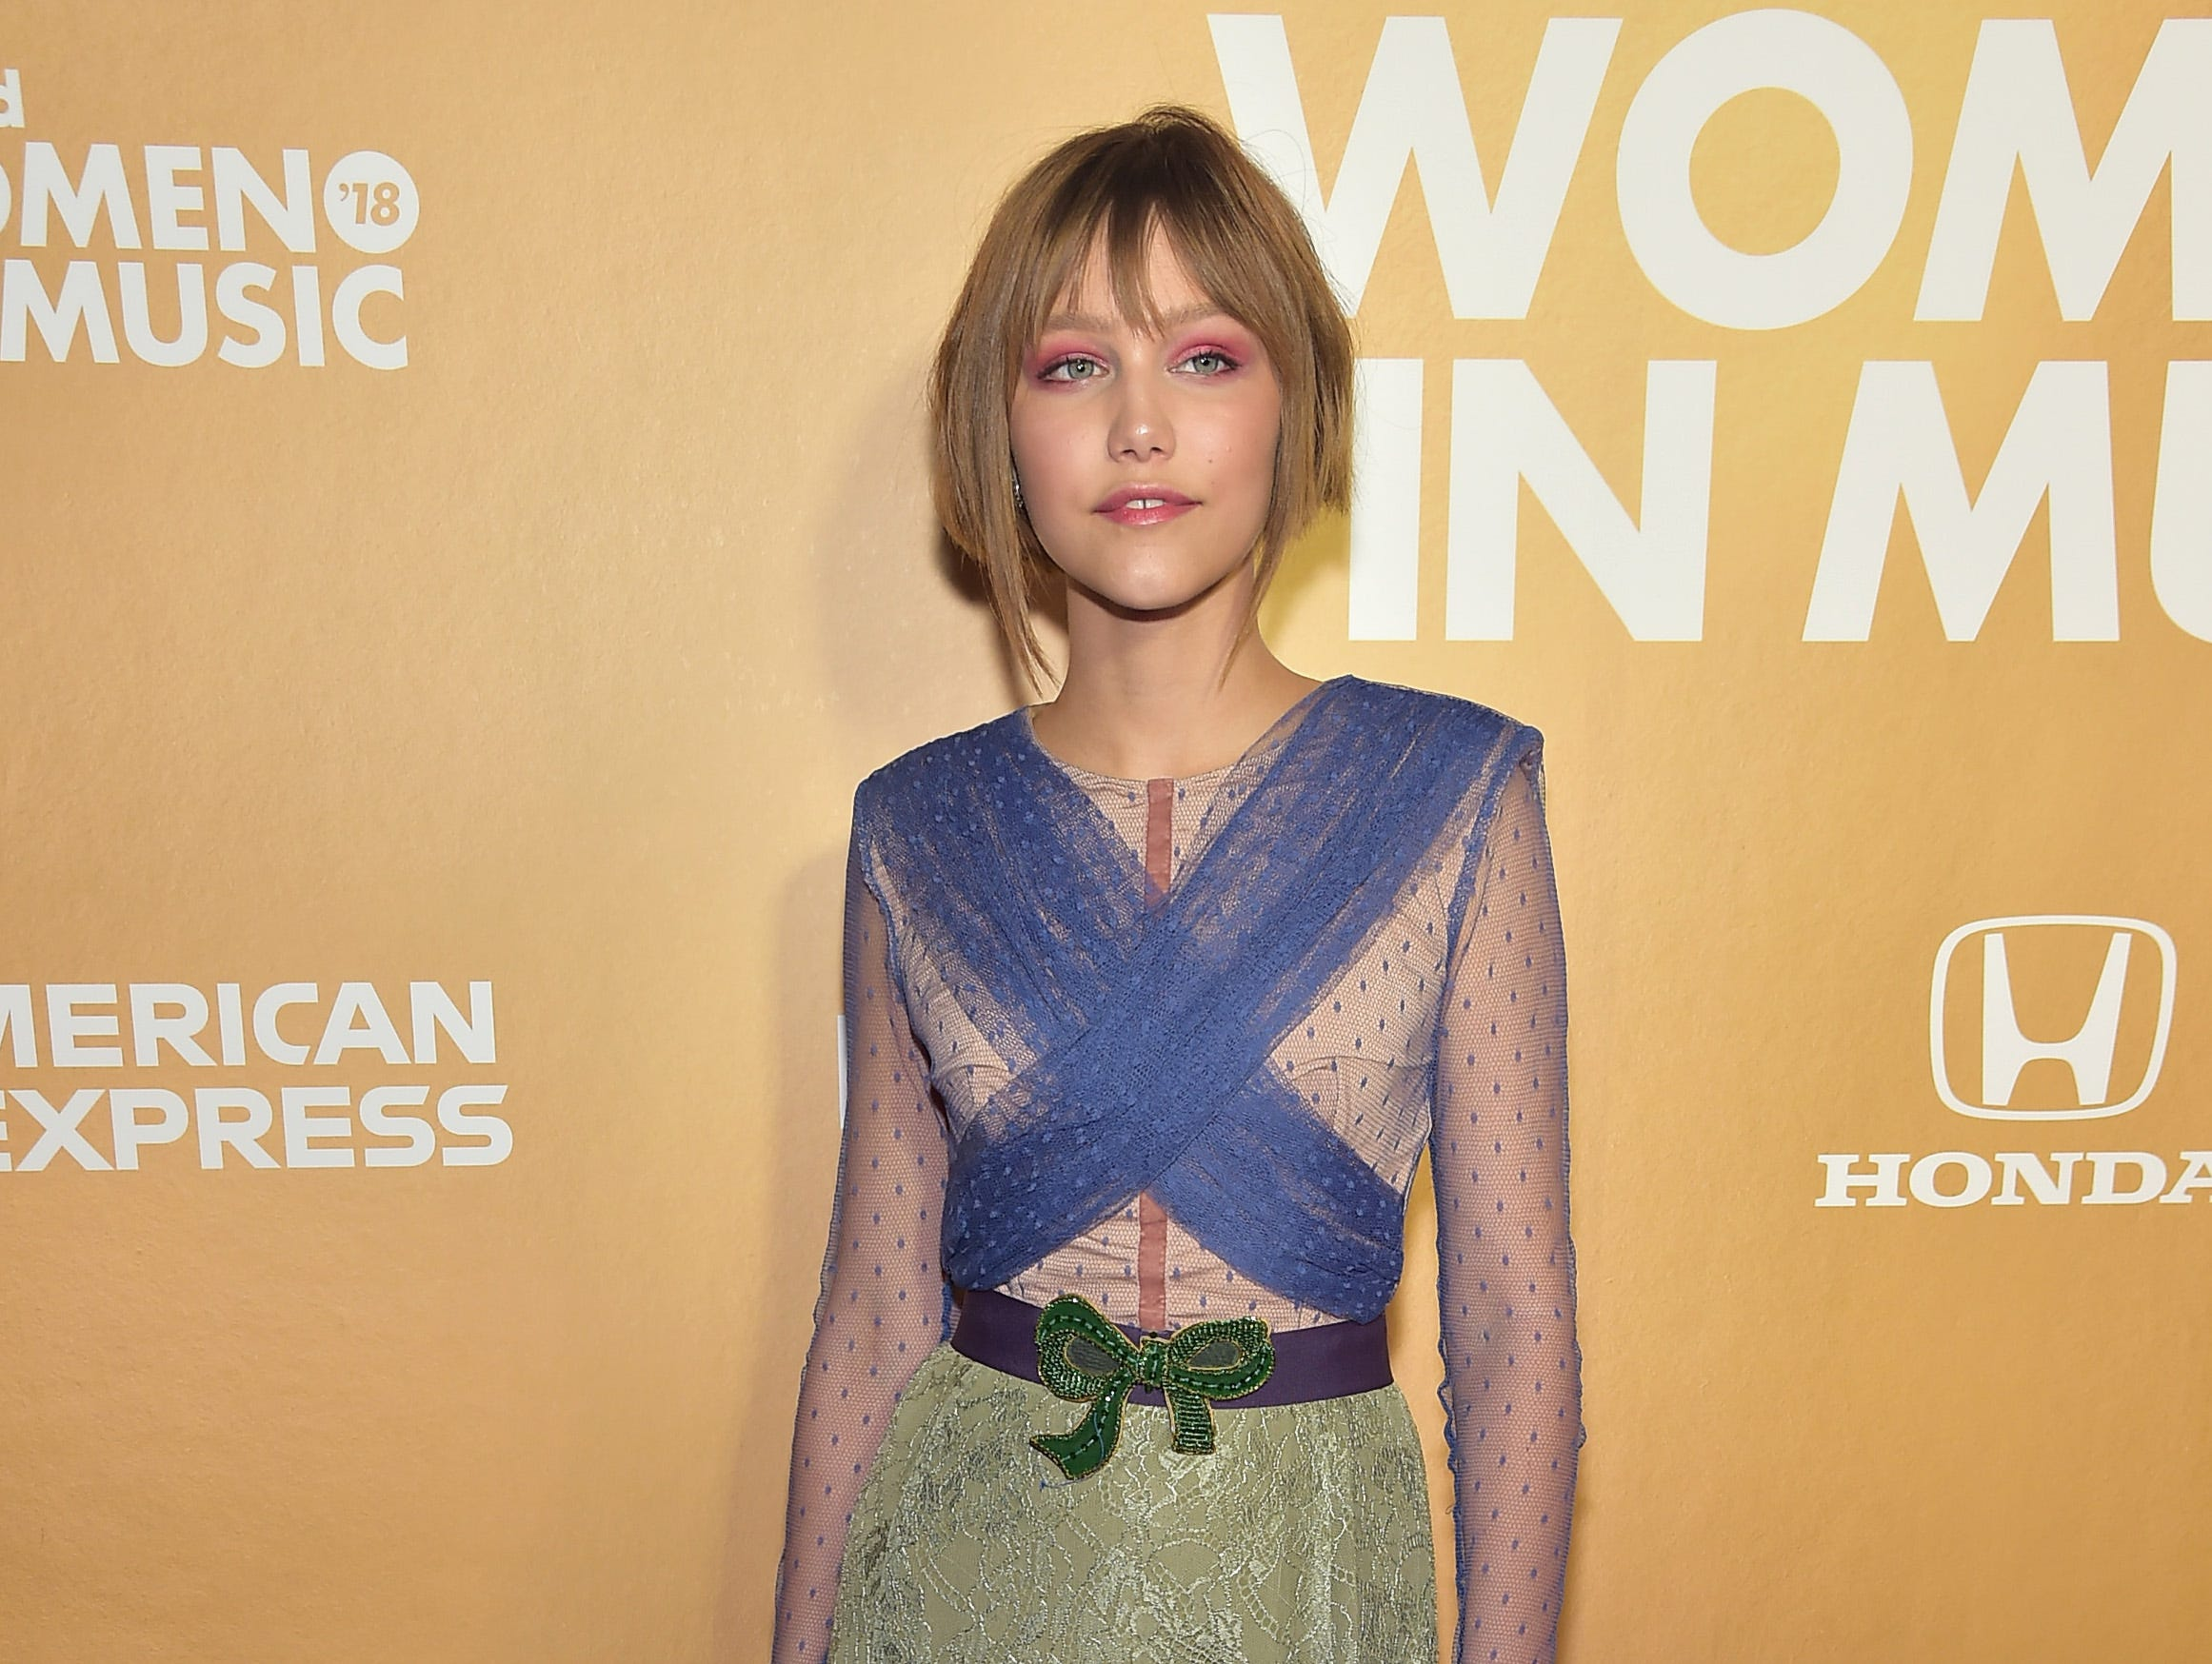 NEW YORK, NEW YORK - DECEMBER 06: Grace VanderWaal attends Billboard's 13th Annual Women In Music Event at Pier 36 on December 06, 2018 in New York City. (Photo by Theo Wargo/Getty Images) ORG XMIT: 775259767 ORIG FILE ID: 1078266184